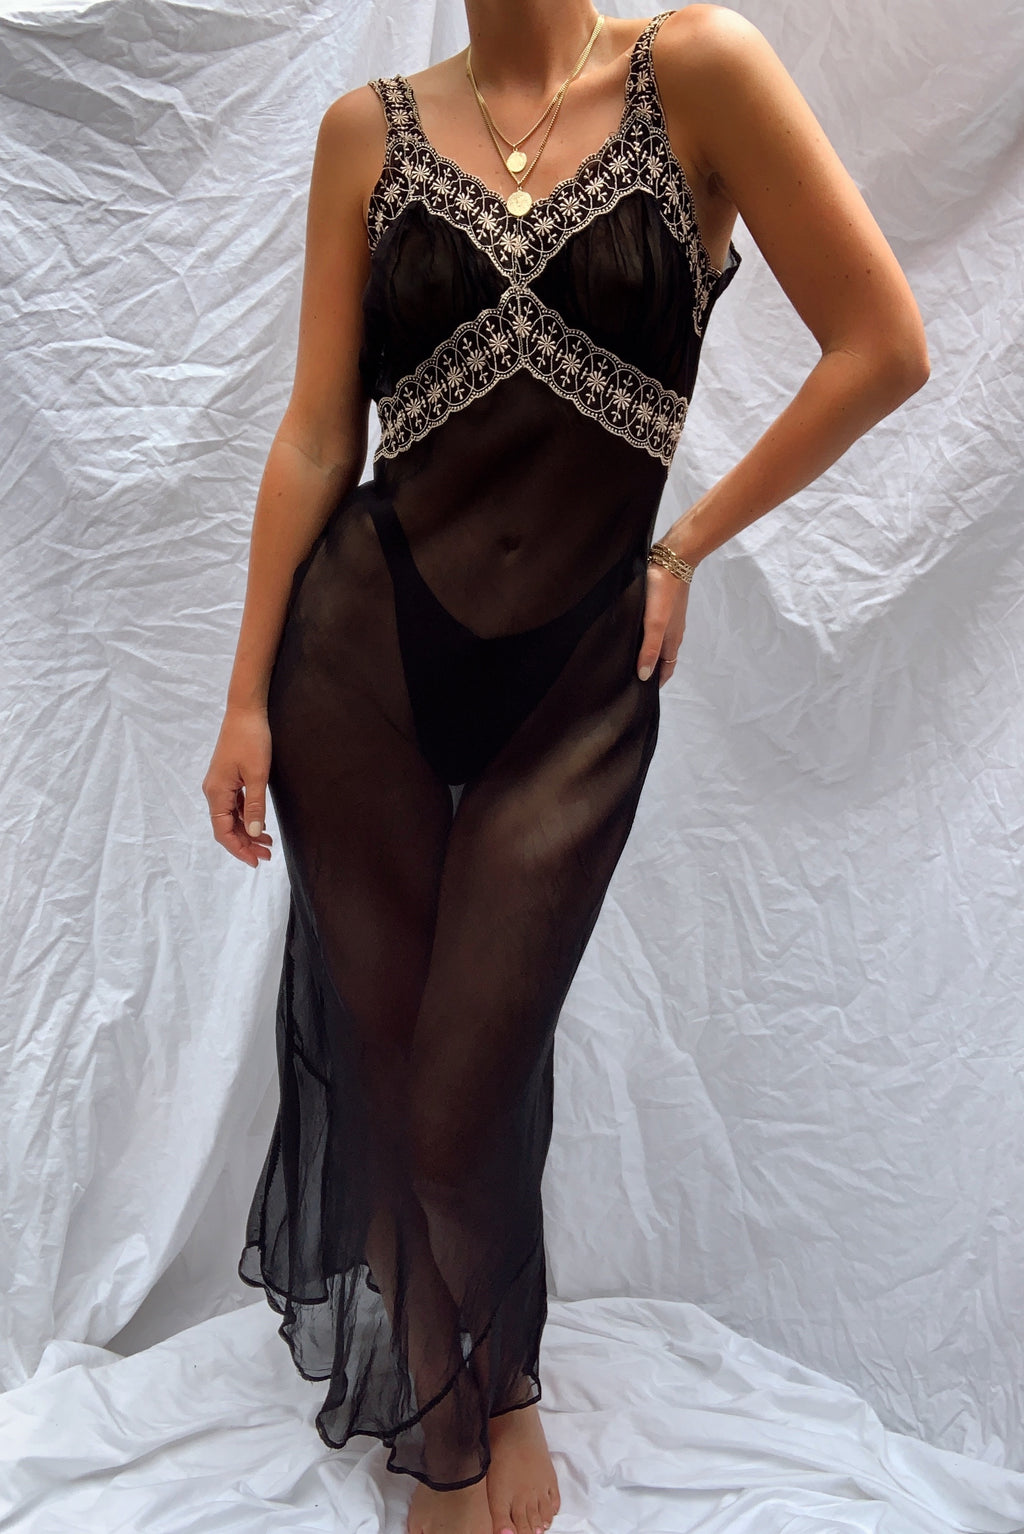 Stunning Sheer Slip w Lace Detail (S)